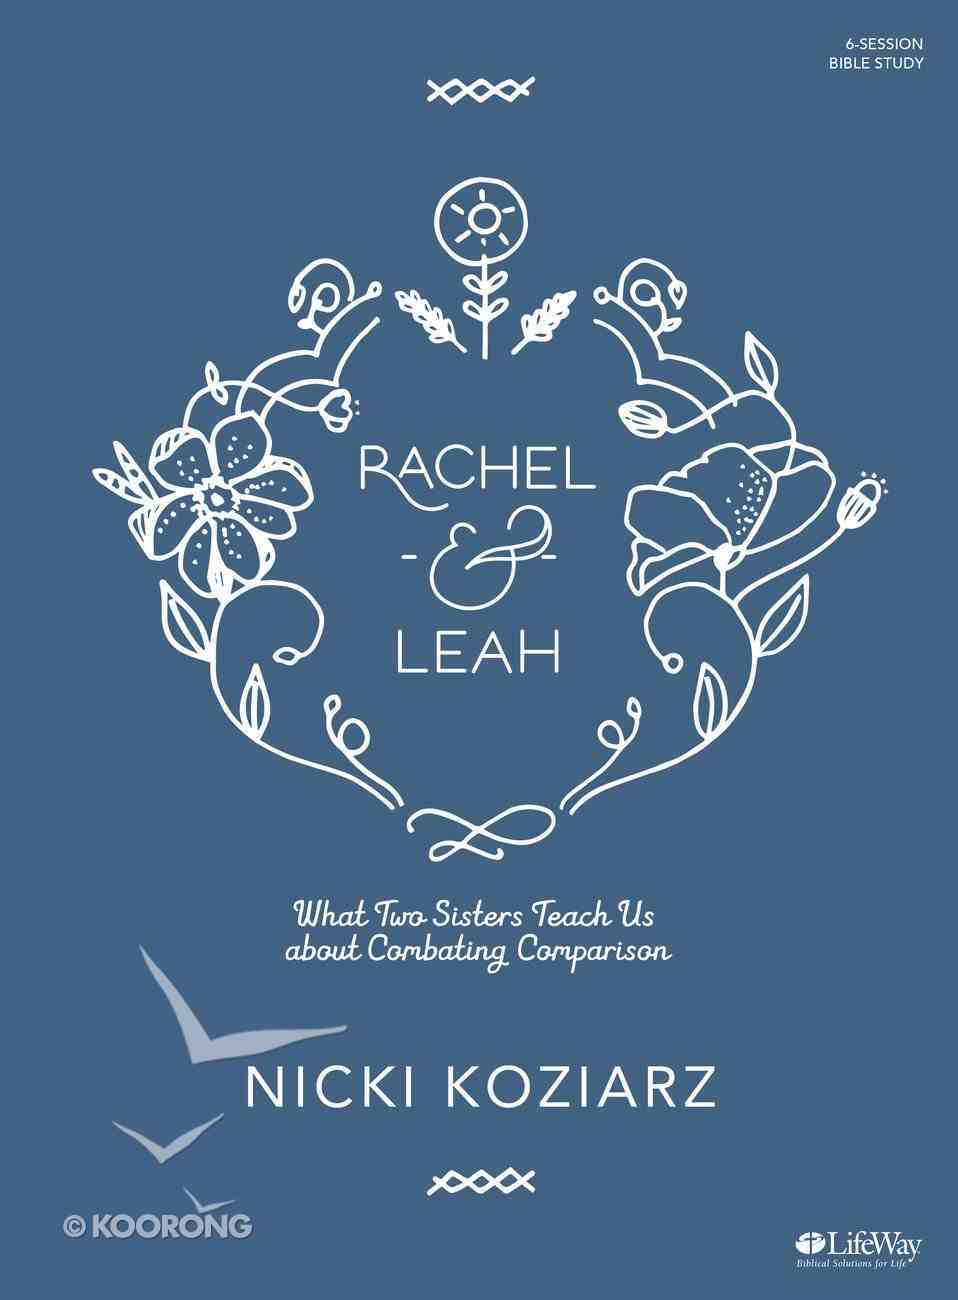 Rachel & Leah: What Two Sisters Teach Us About Combating Comparison (Bible Study Book) Paperback